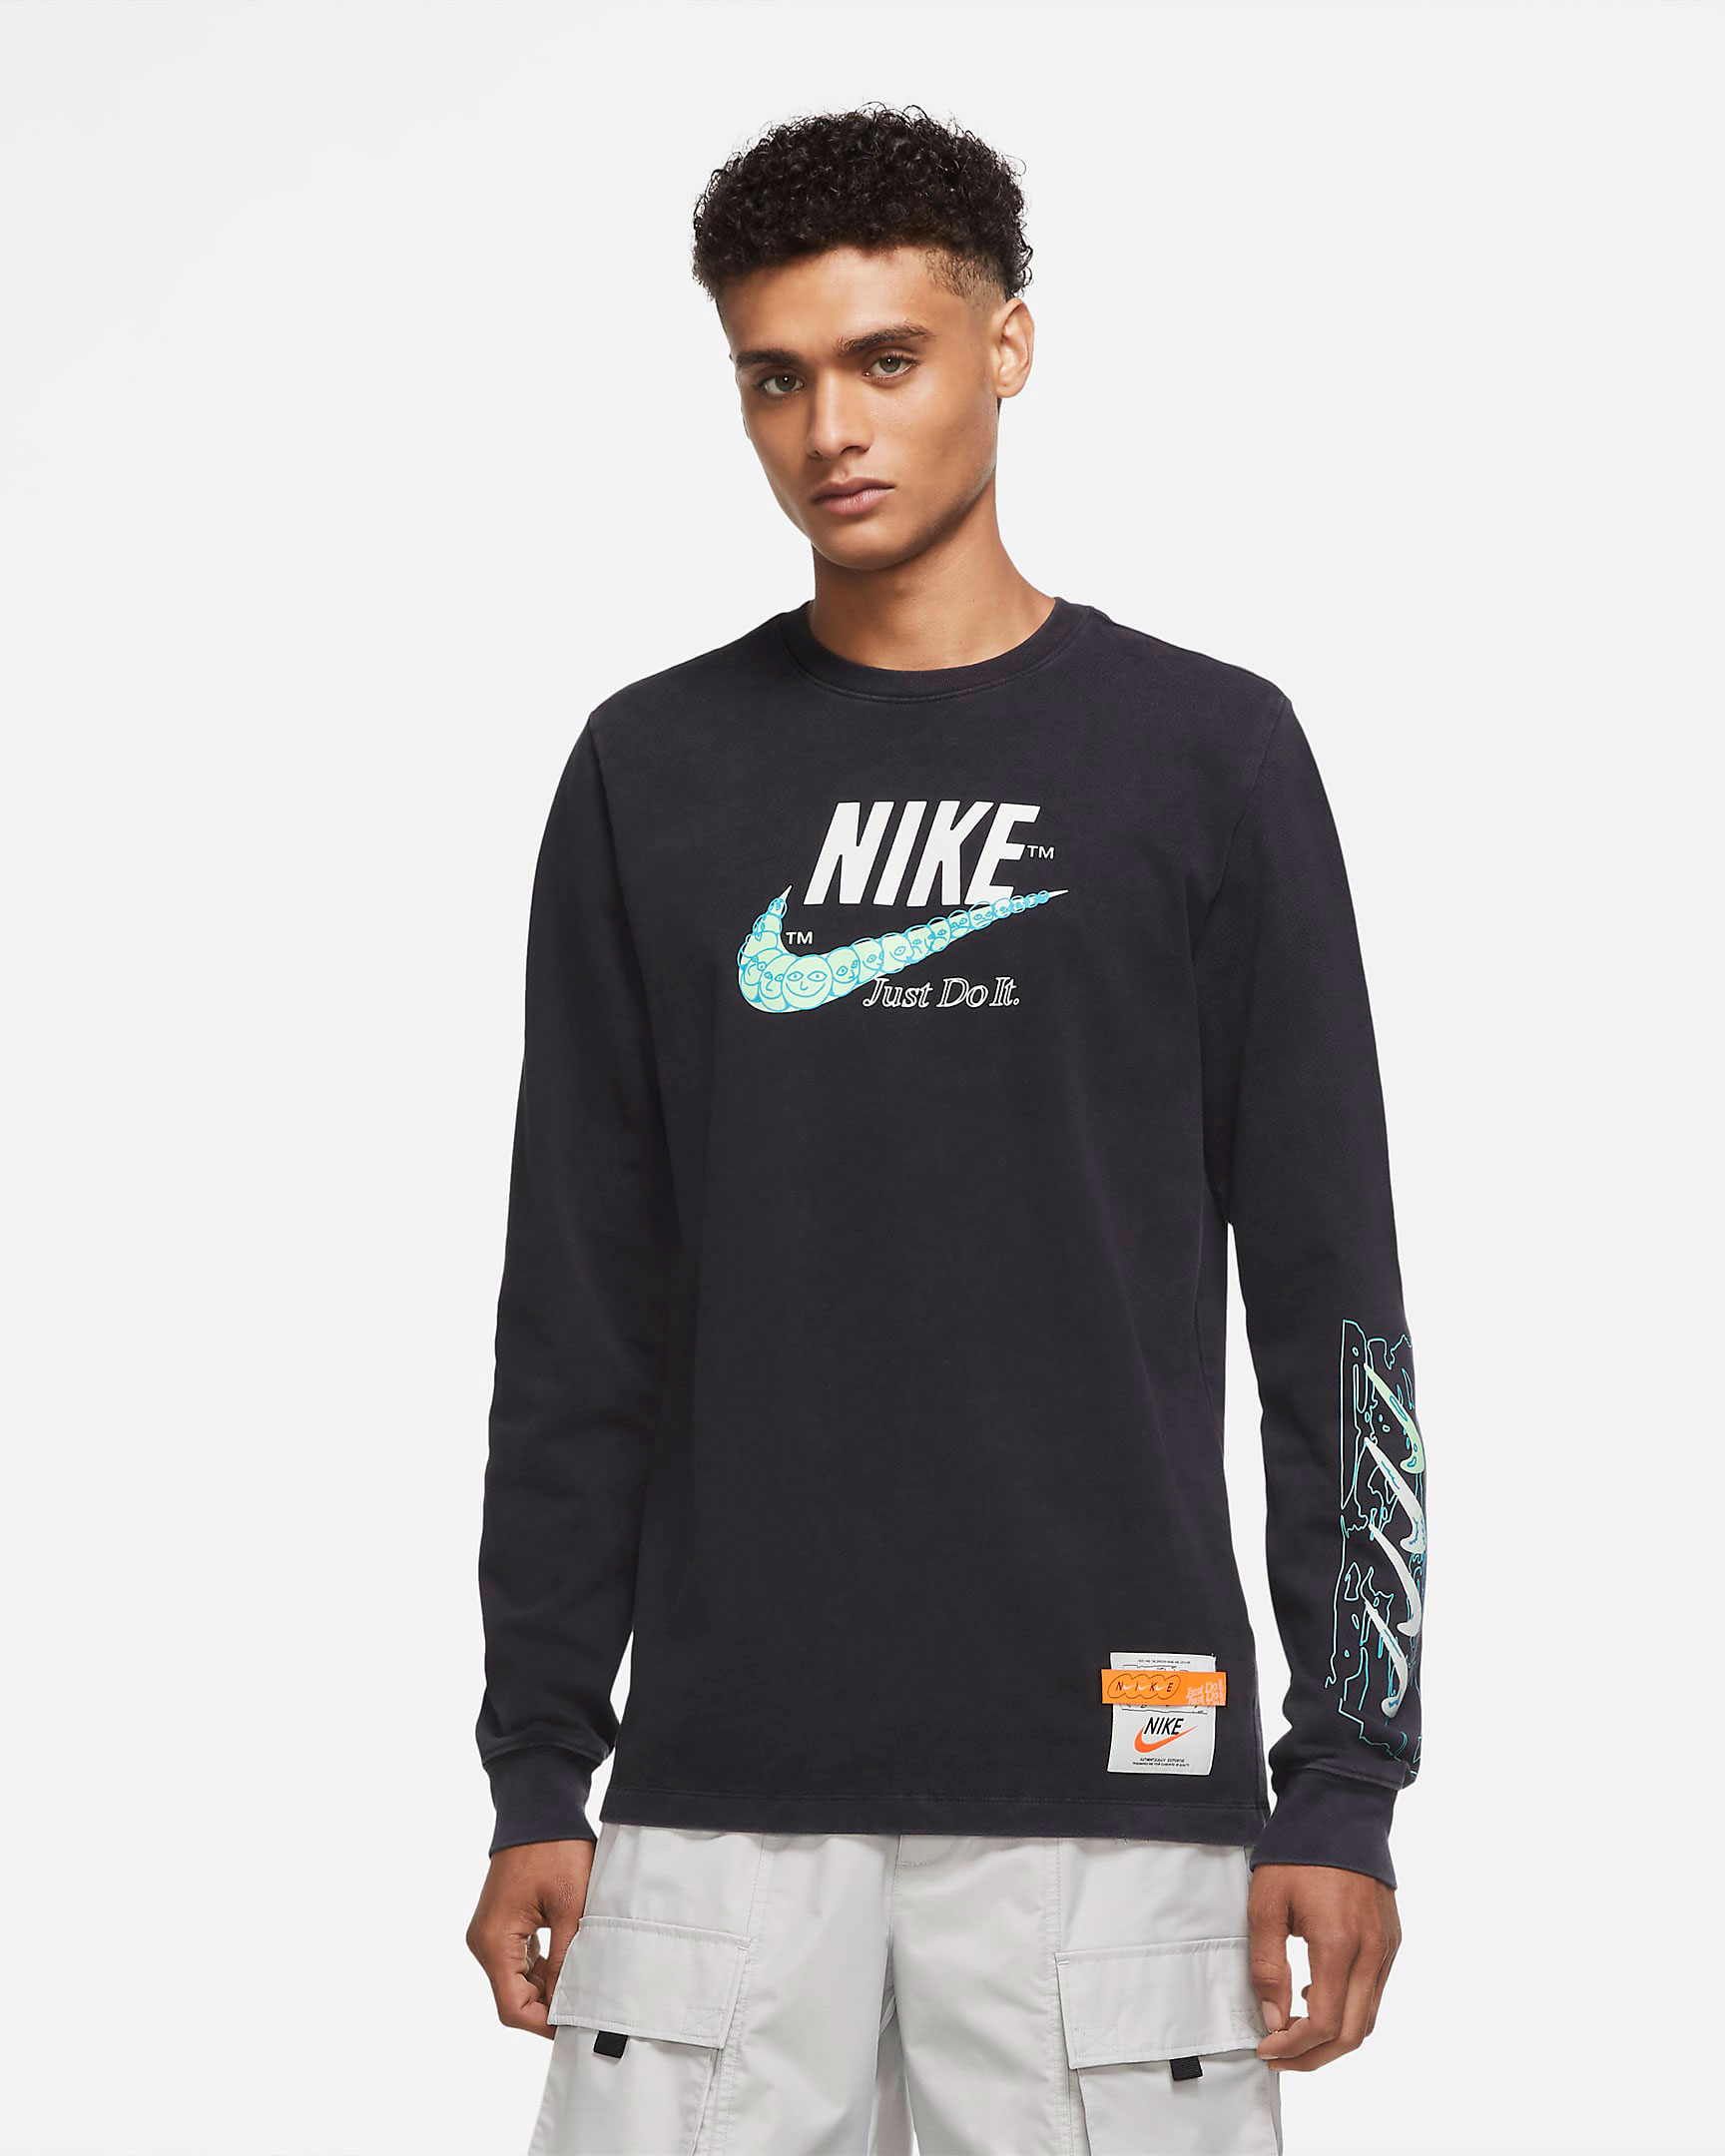 nike-sportswear-wash-drip-long-sleeve-shirt-black-1